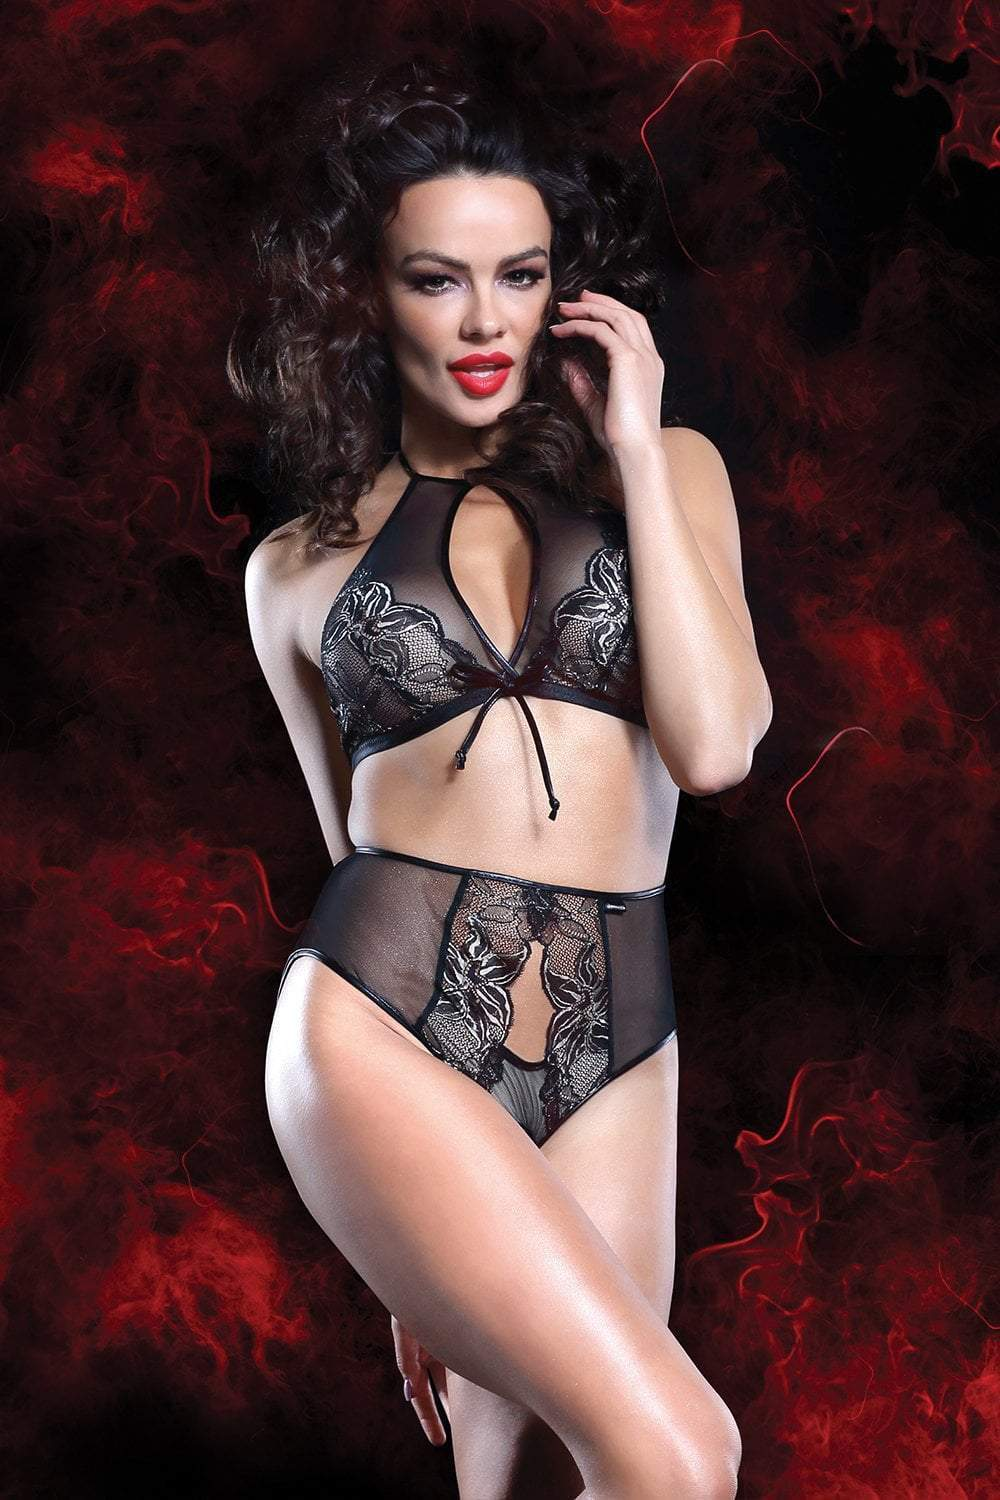 demoniq Demoniq Lingerie Set UK 8 / Black Mathilde Lingerie Set